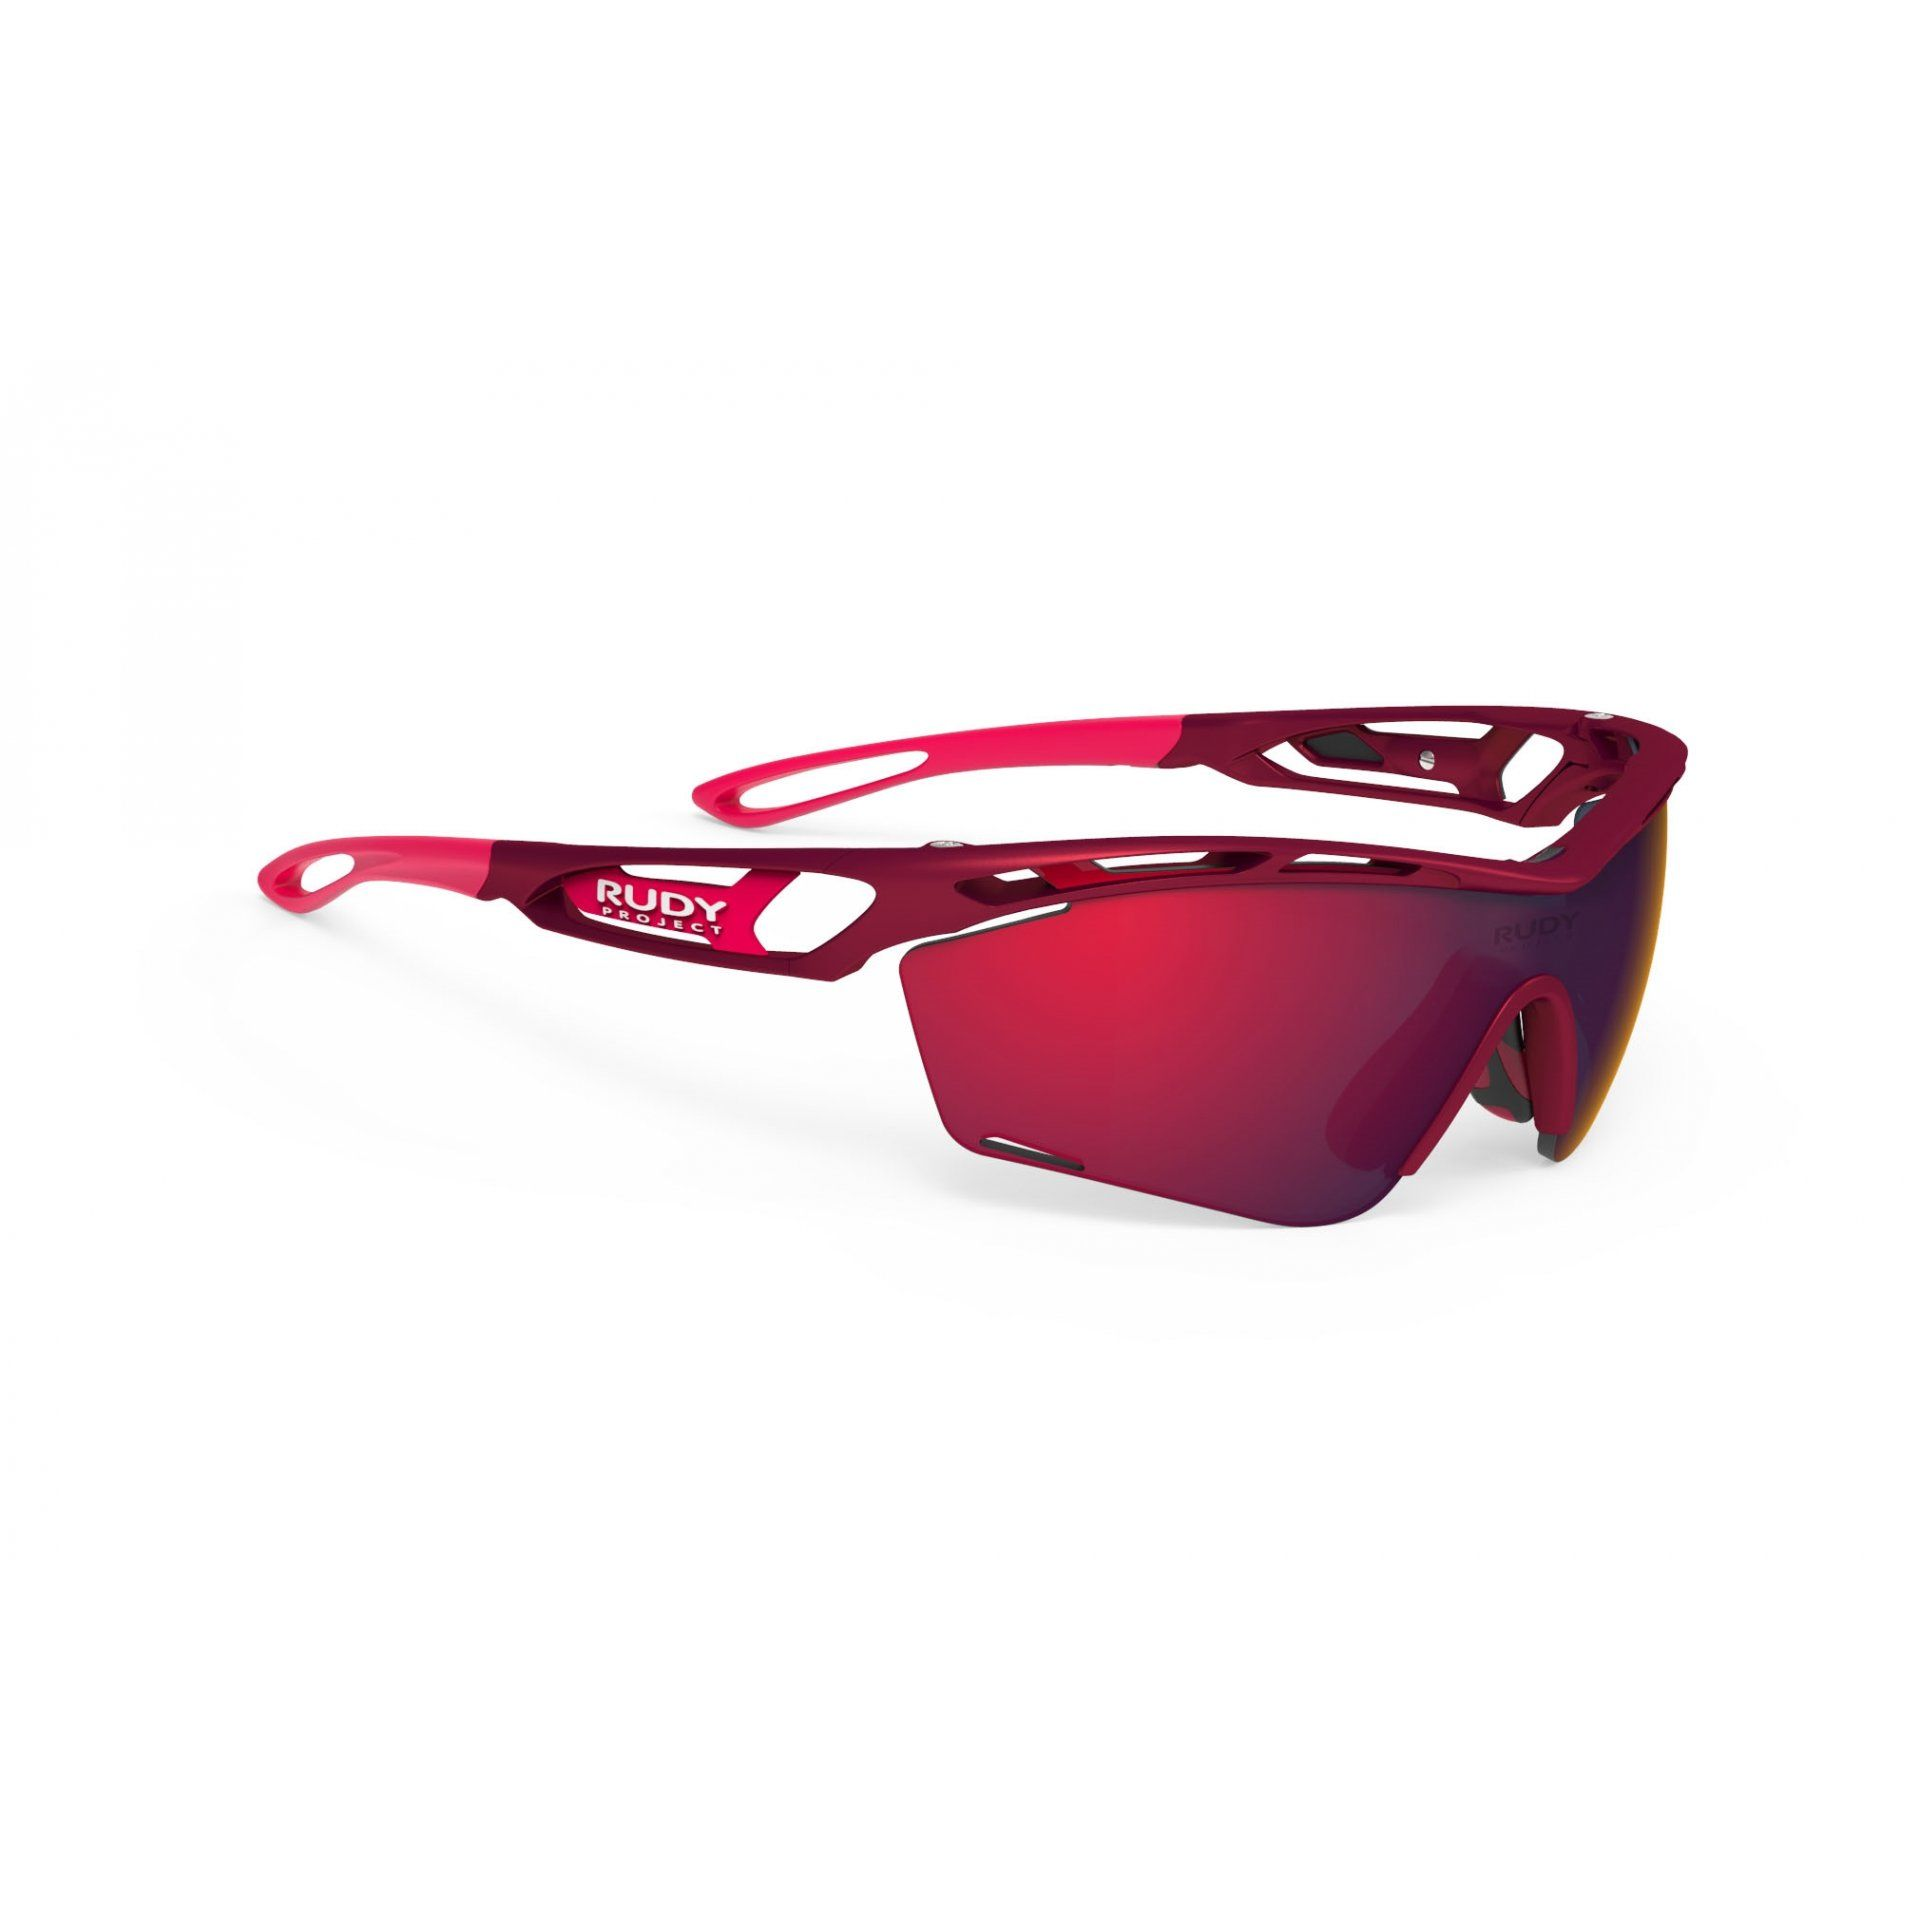 OKULARY RUDY PROJECT TRALYX SLIM MERLOT MATTE+MULTILASER RED 1